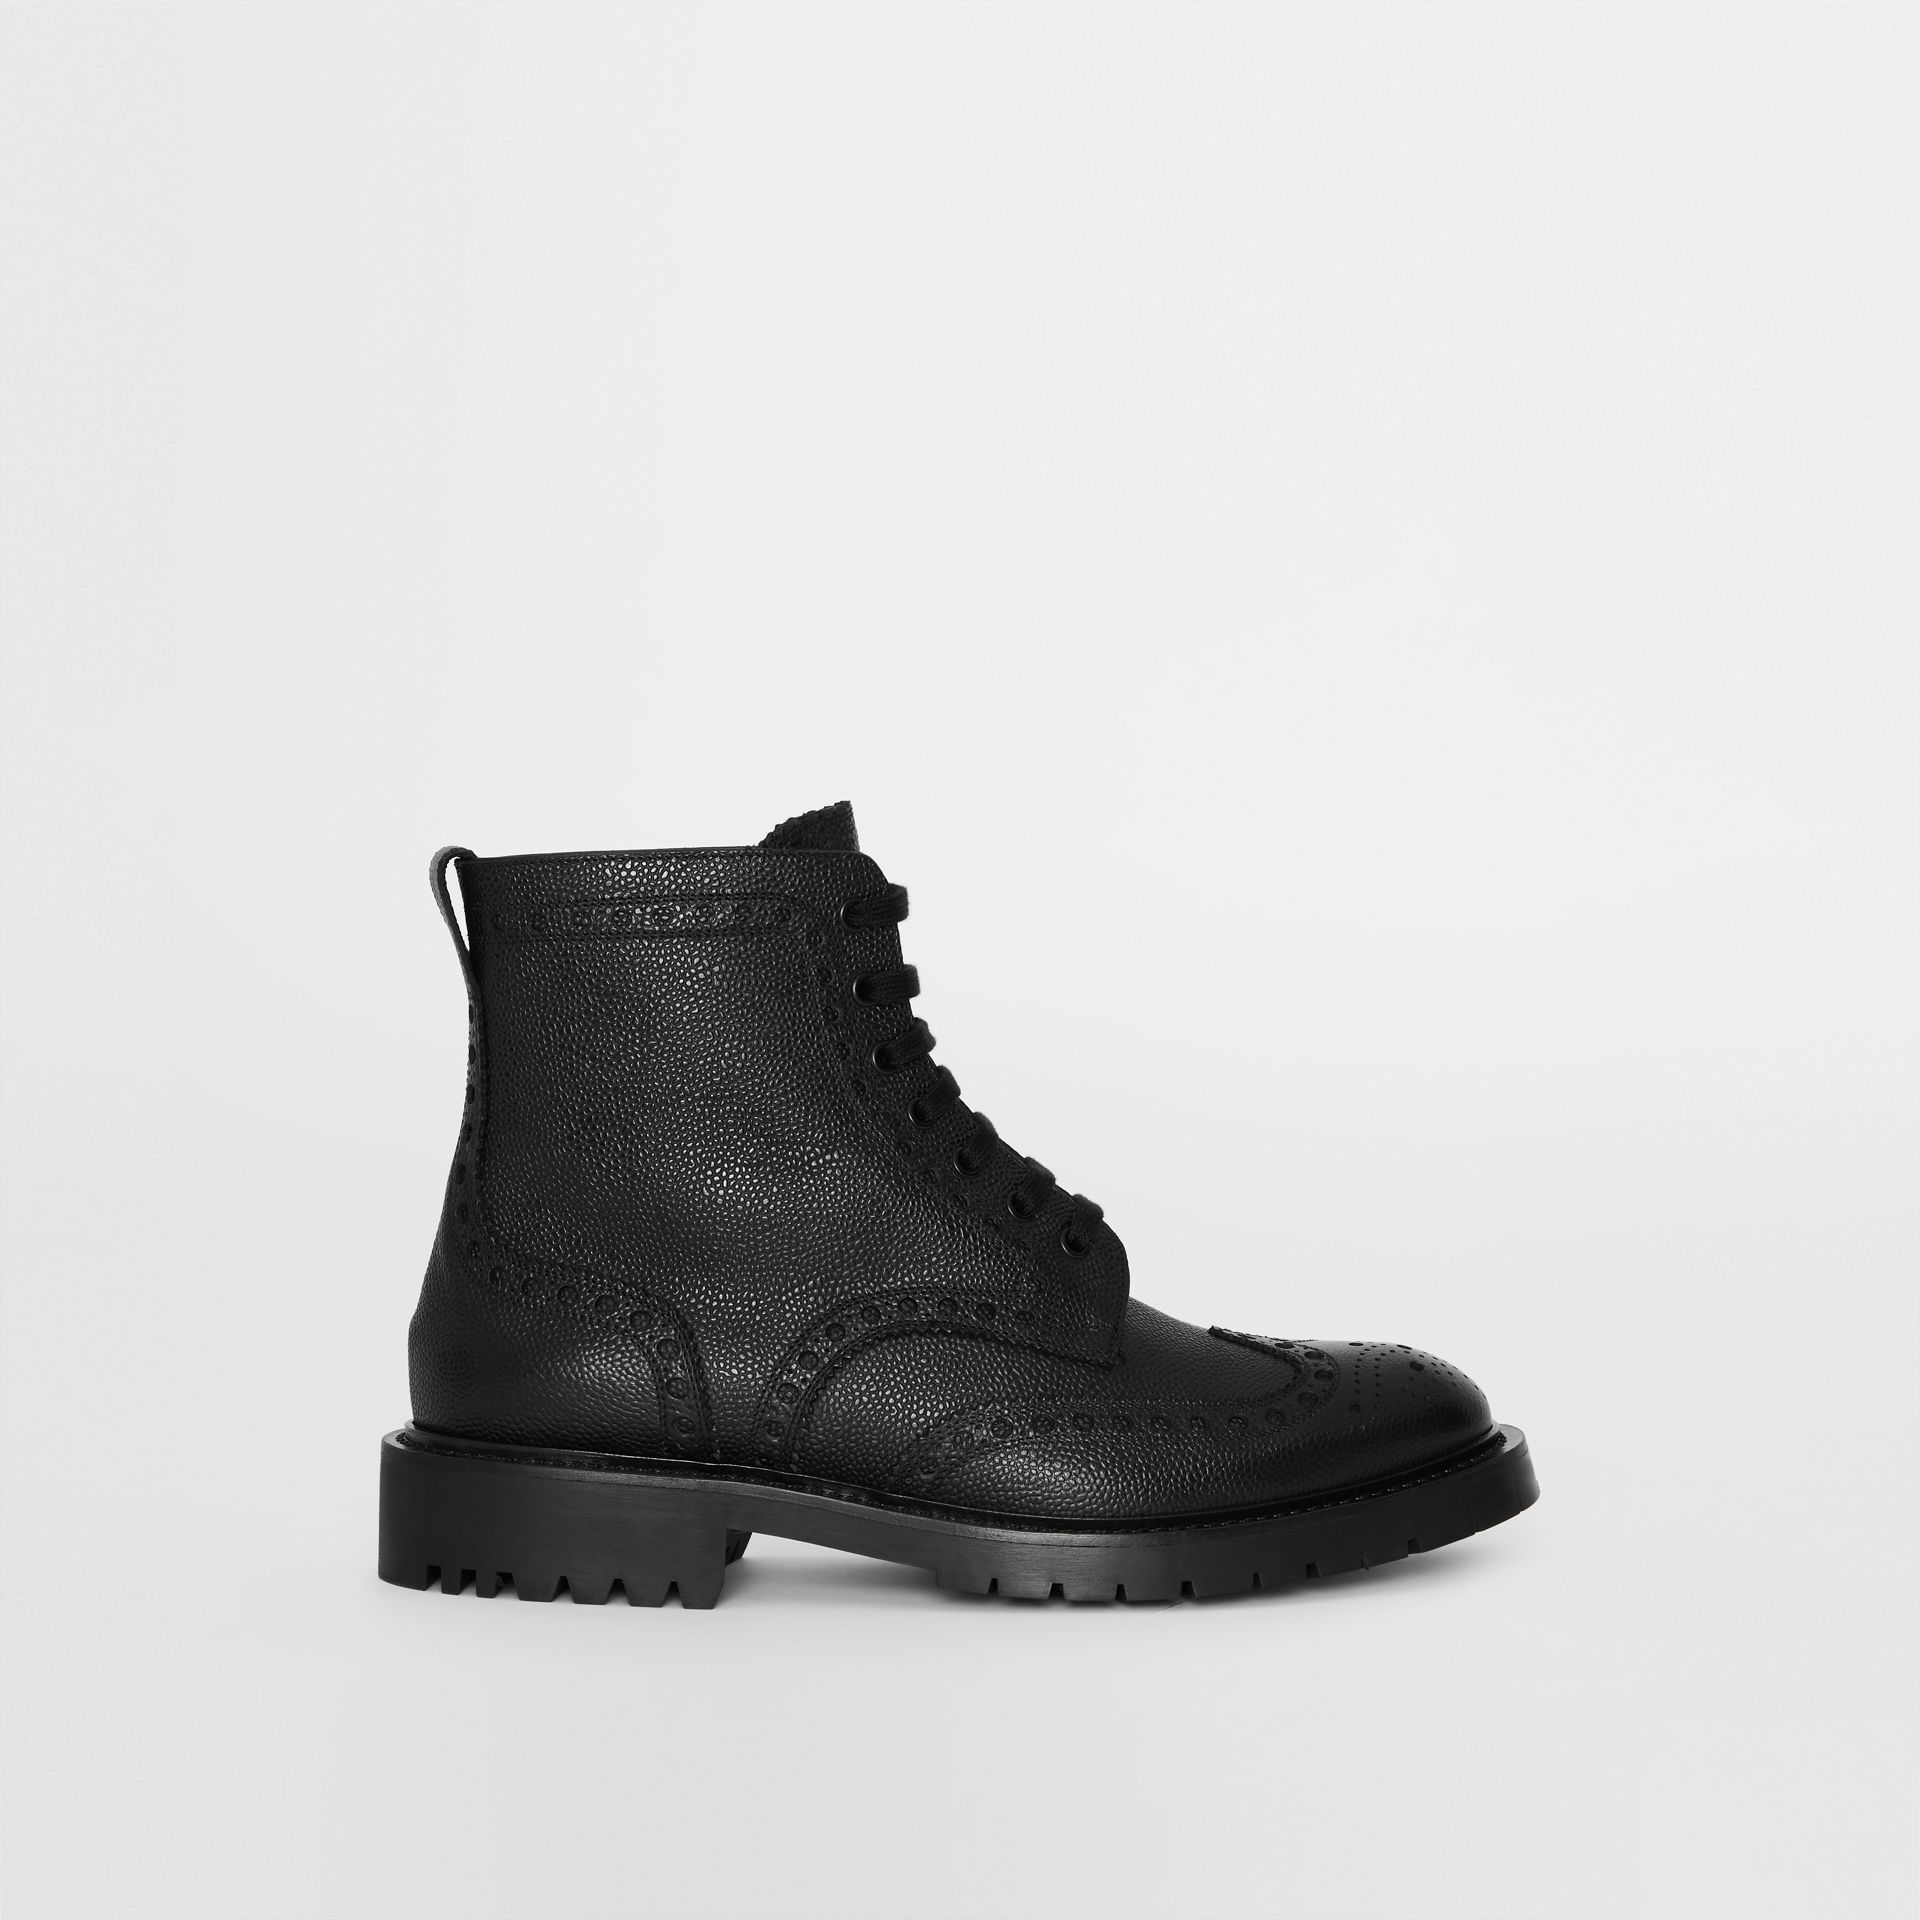 Brogue Detail Grainy Leather Boots in Black - Men | Burberry - gallery image 5